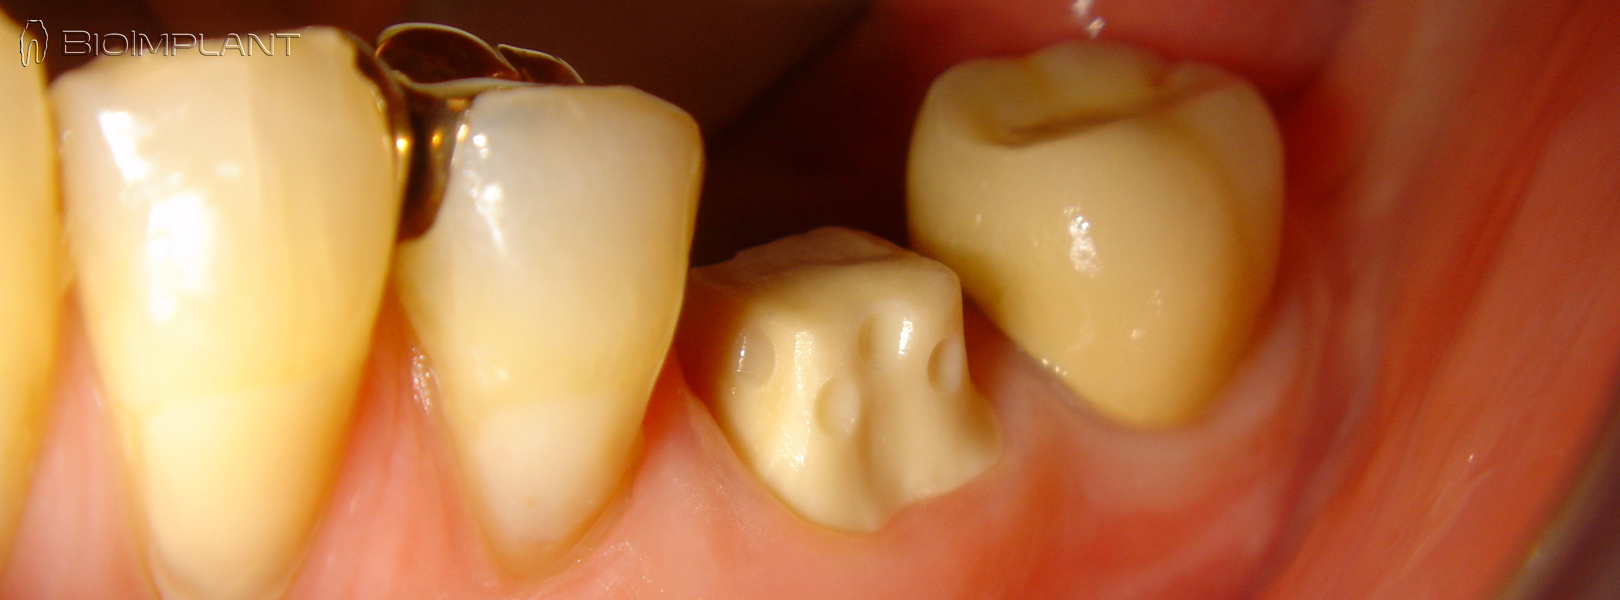 crown stump zirconia implant